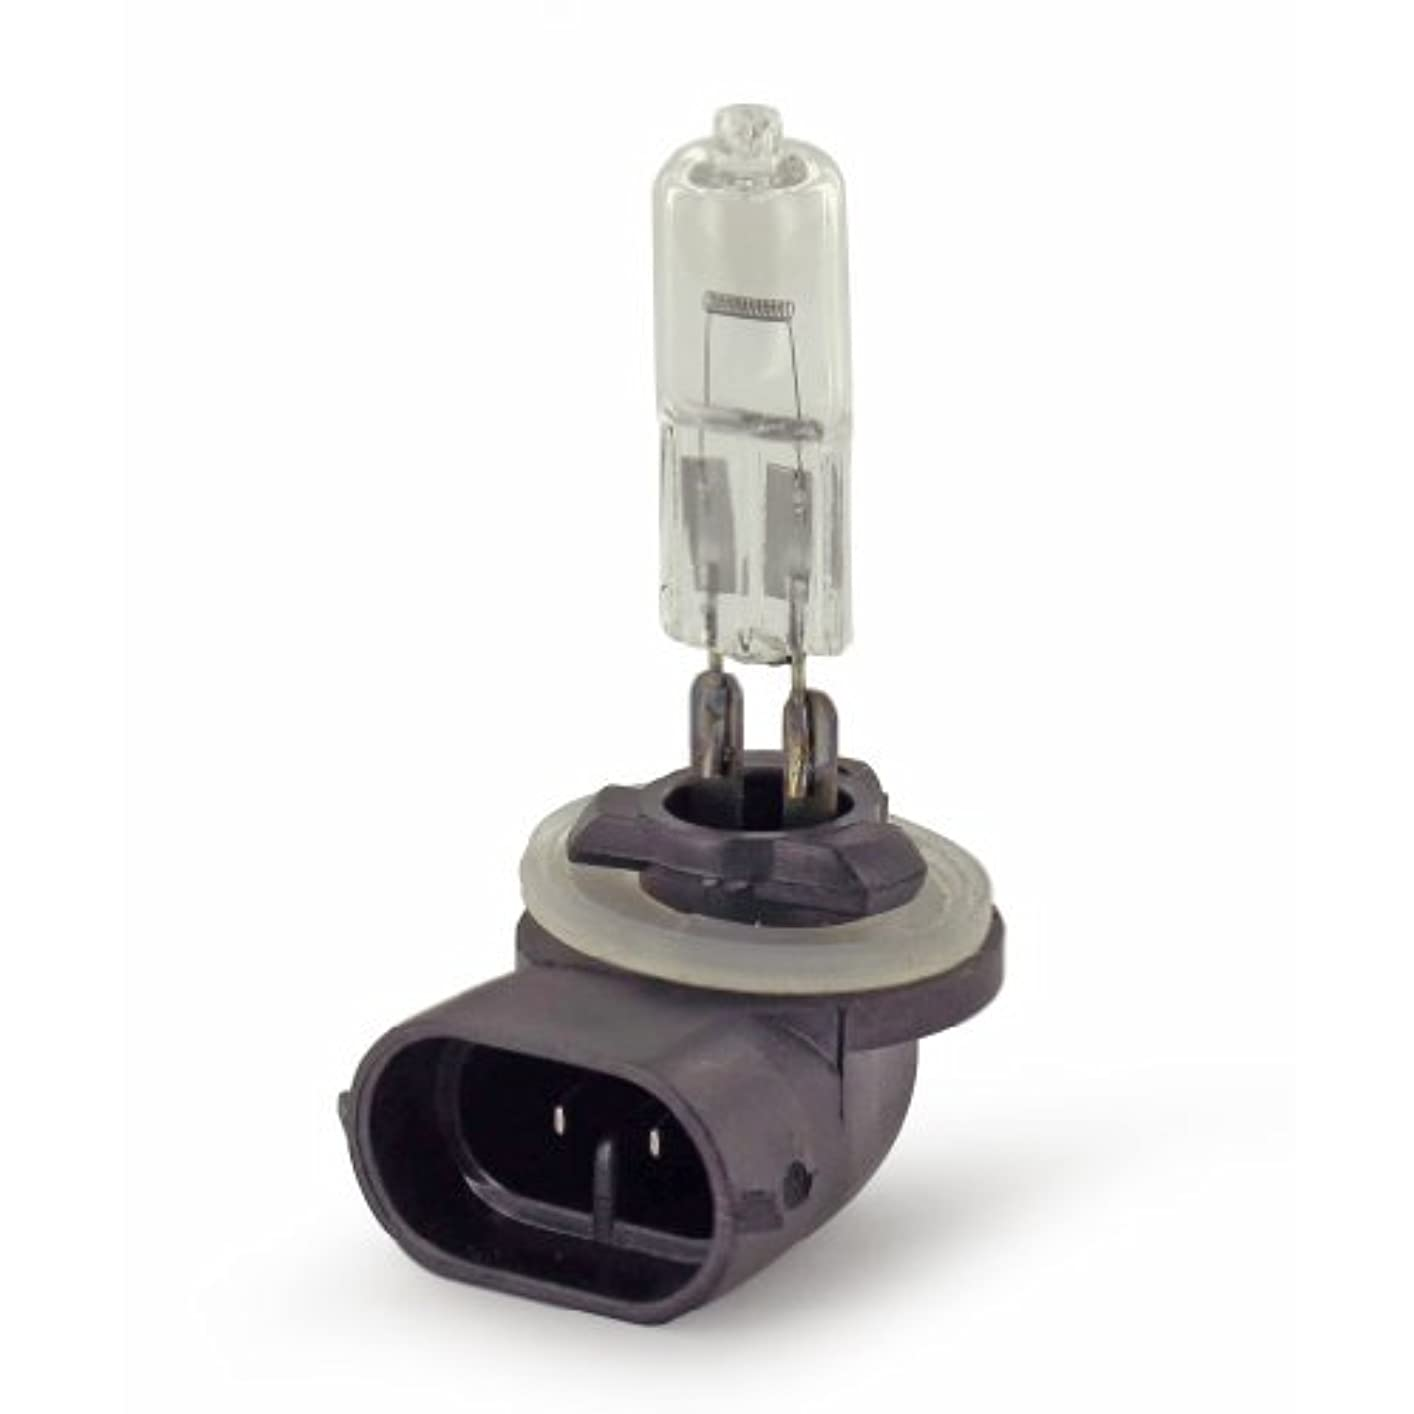 テレビを見る分類順応性Intella 1062038 GE 894 Bulb, 12.8V, 38W by Intella Liftparts Inc.